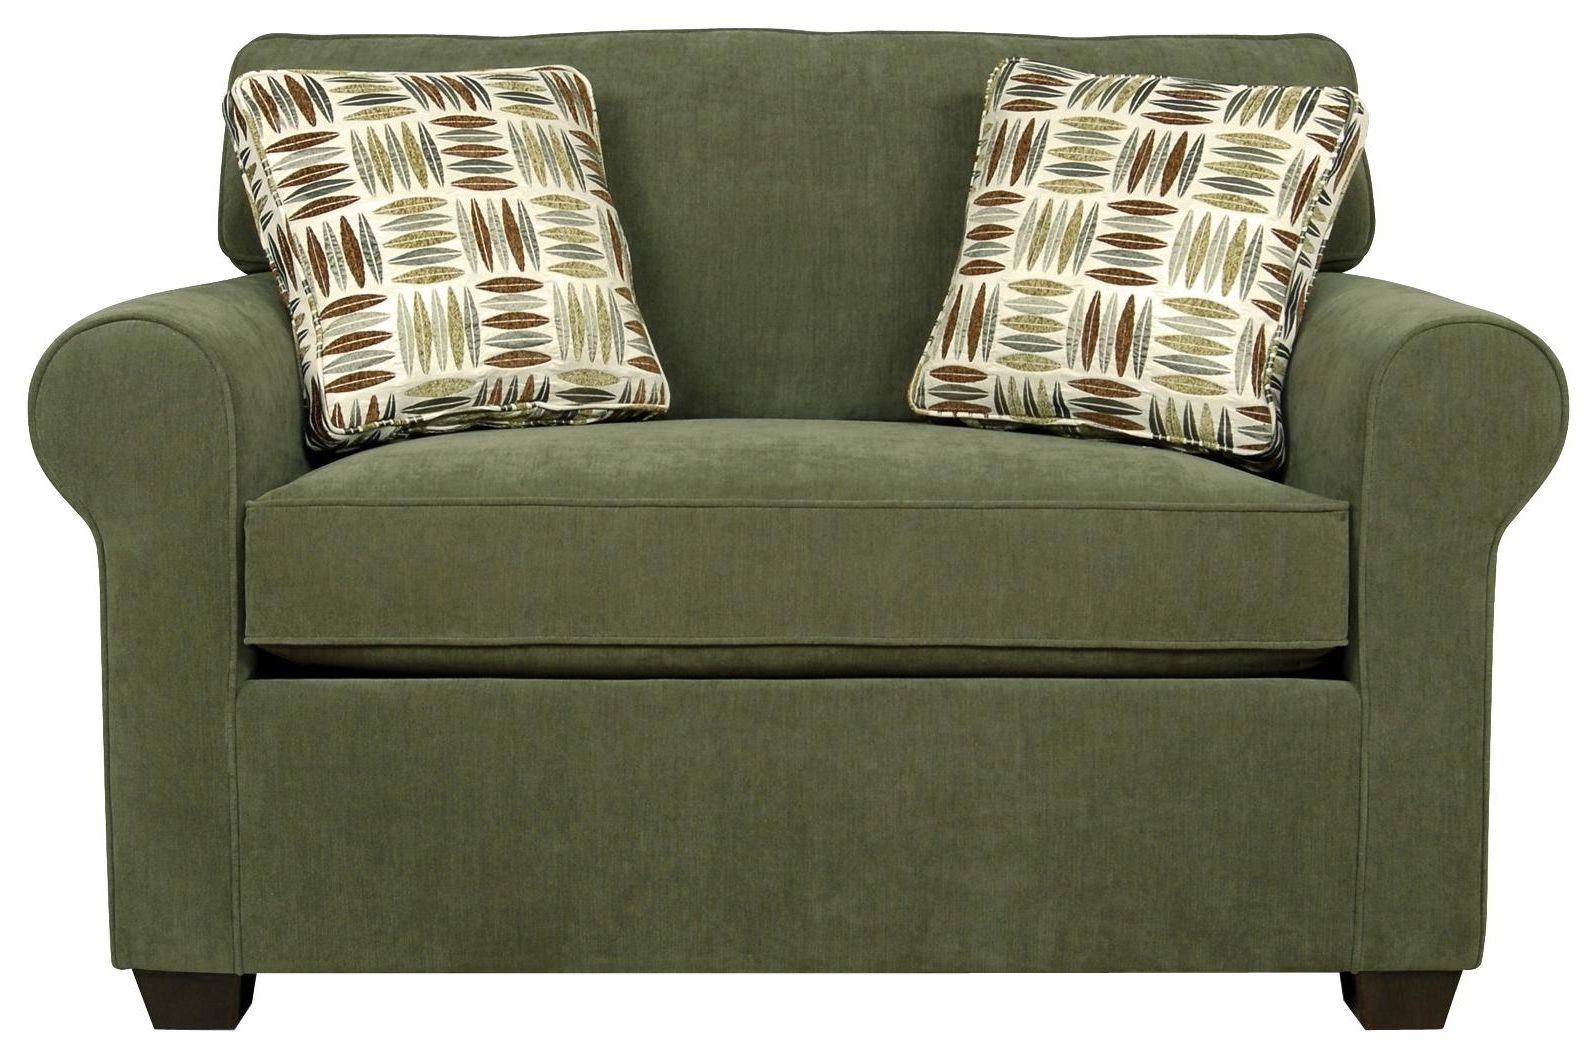 Popular England Seabury Visco Mattress Twin Size Sleeper Sofa For Living Within Twin Sleeper Sofa Chairs (View 2 of 20)